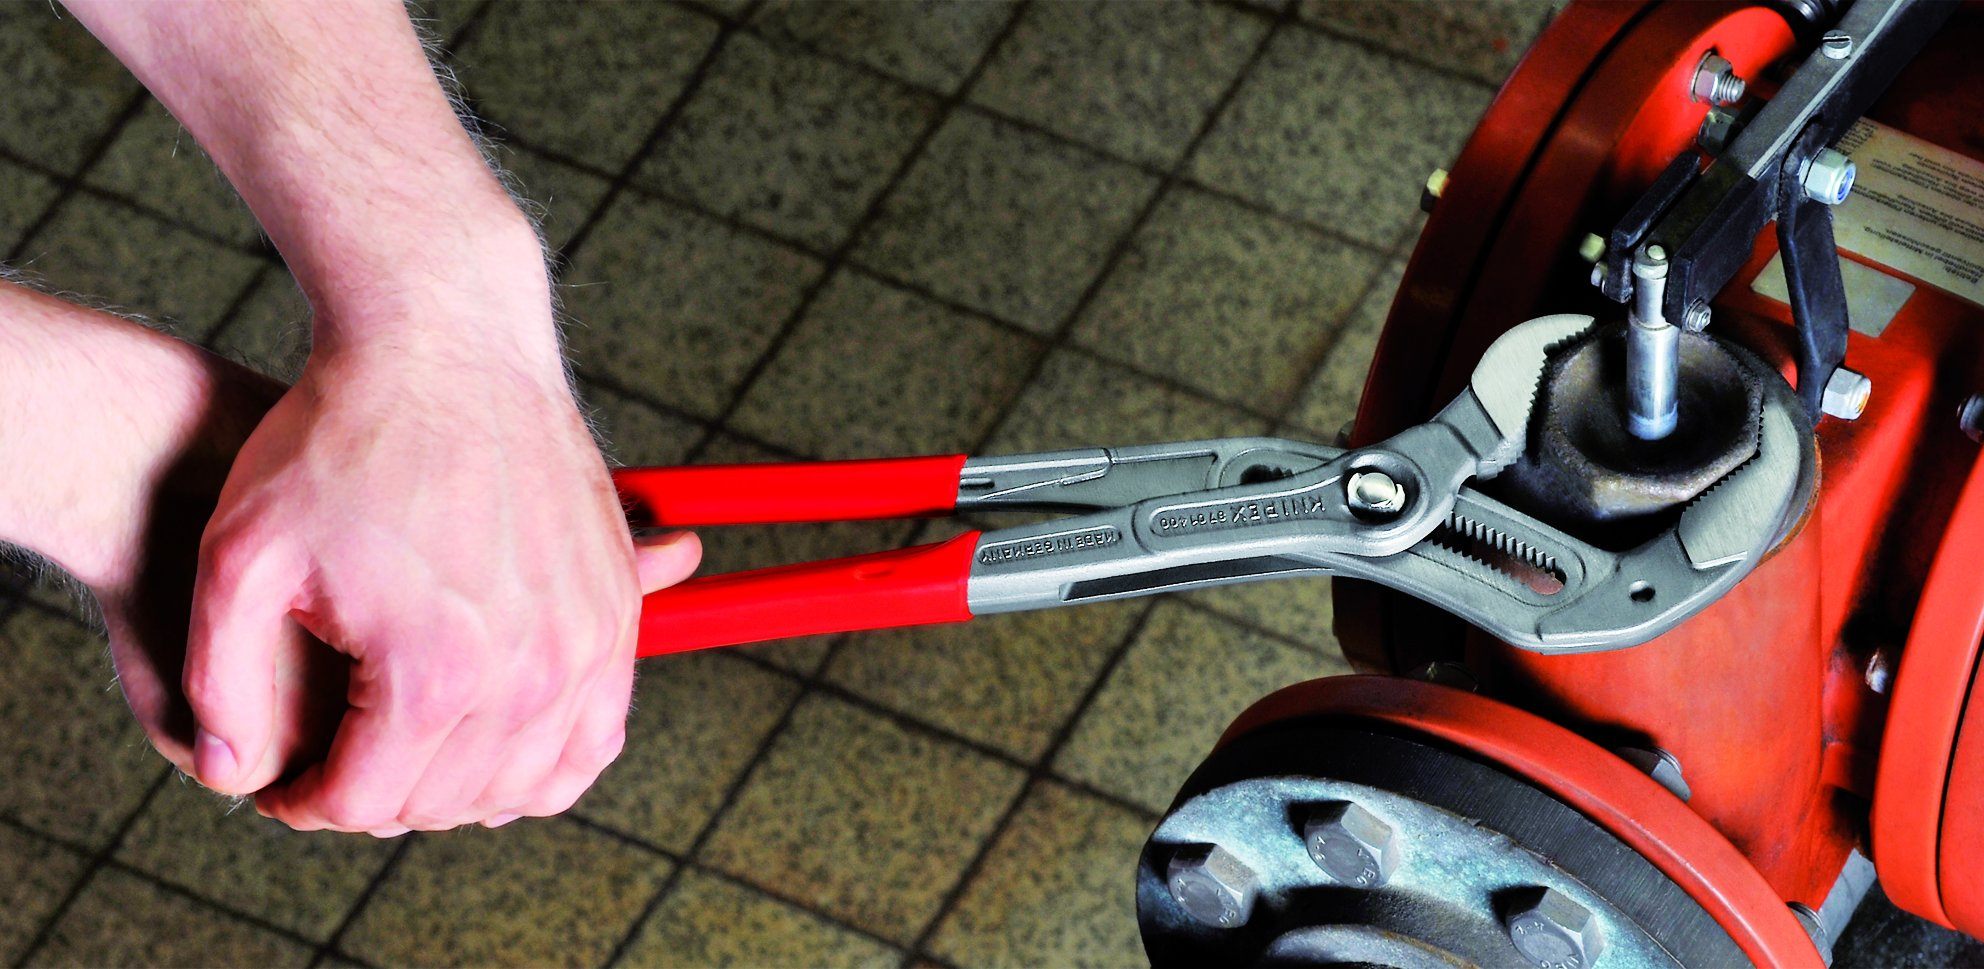 Knipex 8701400 16-Inch Cobra Pliers by KNIPEX Tools (Image #2)